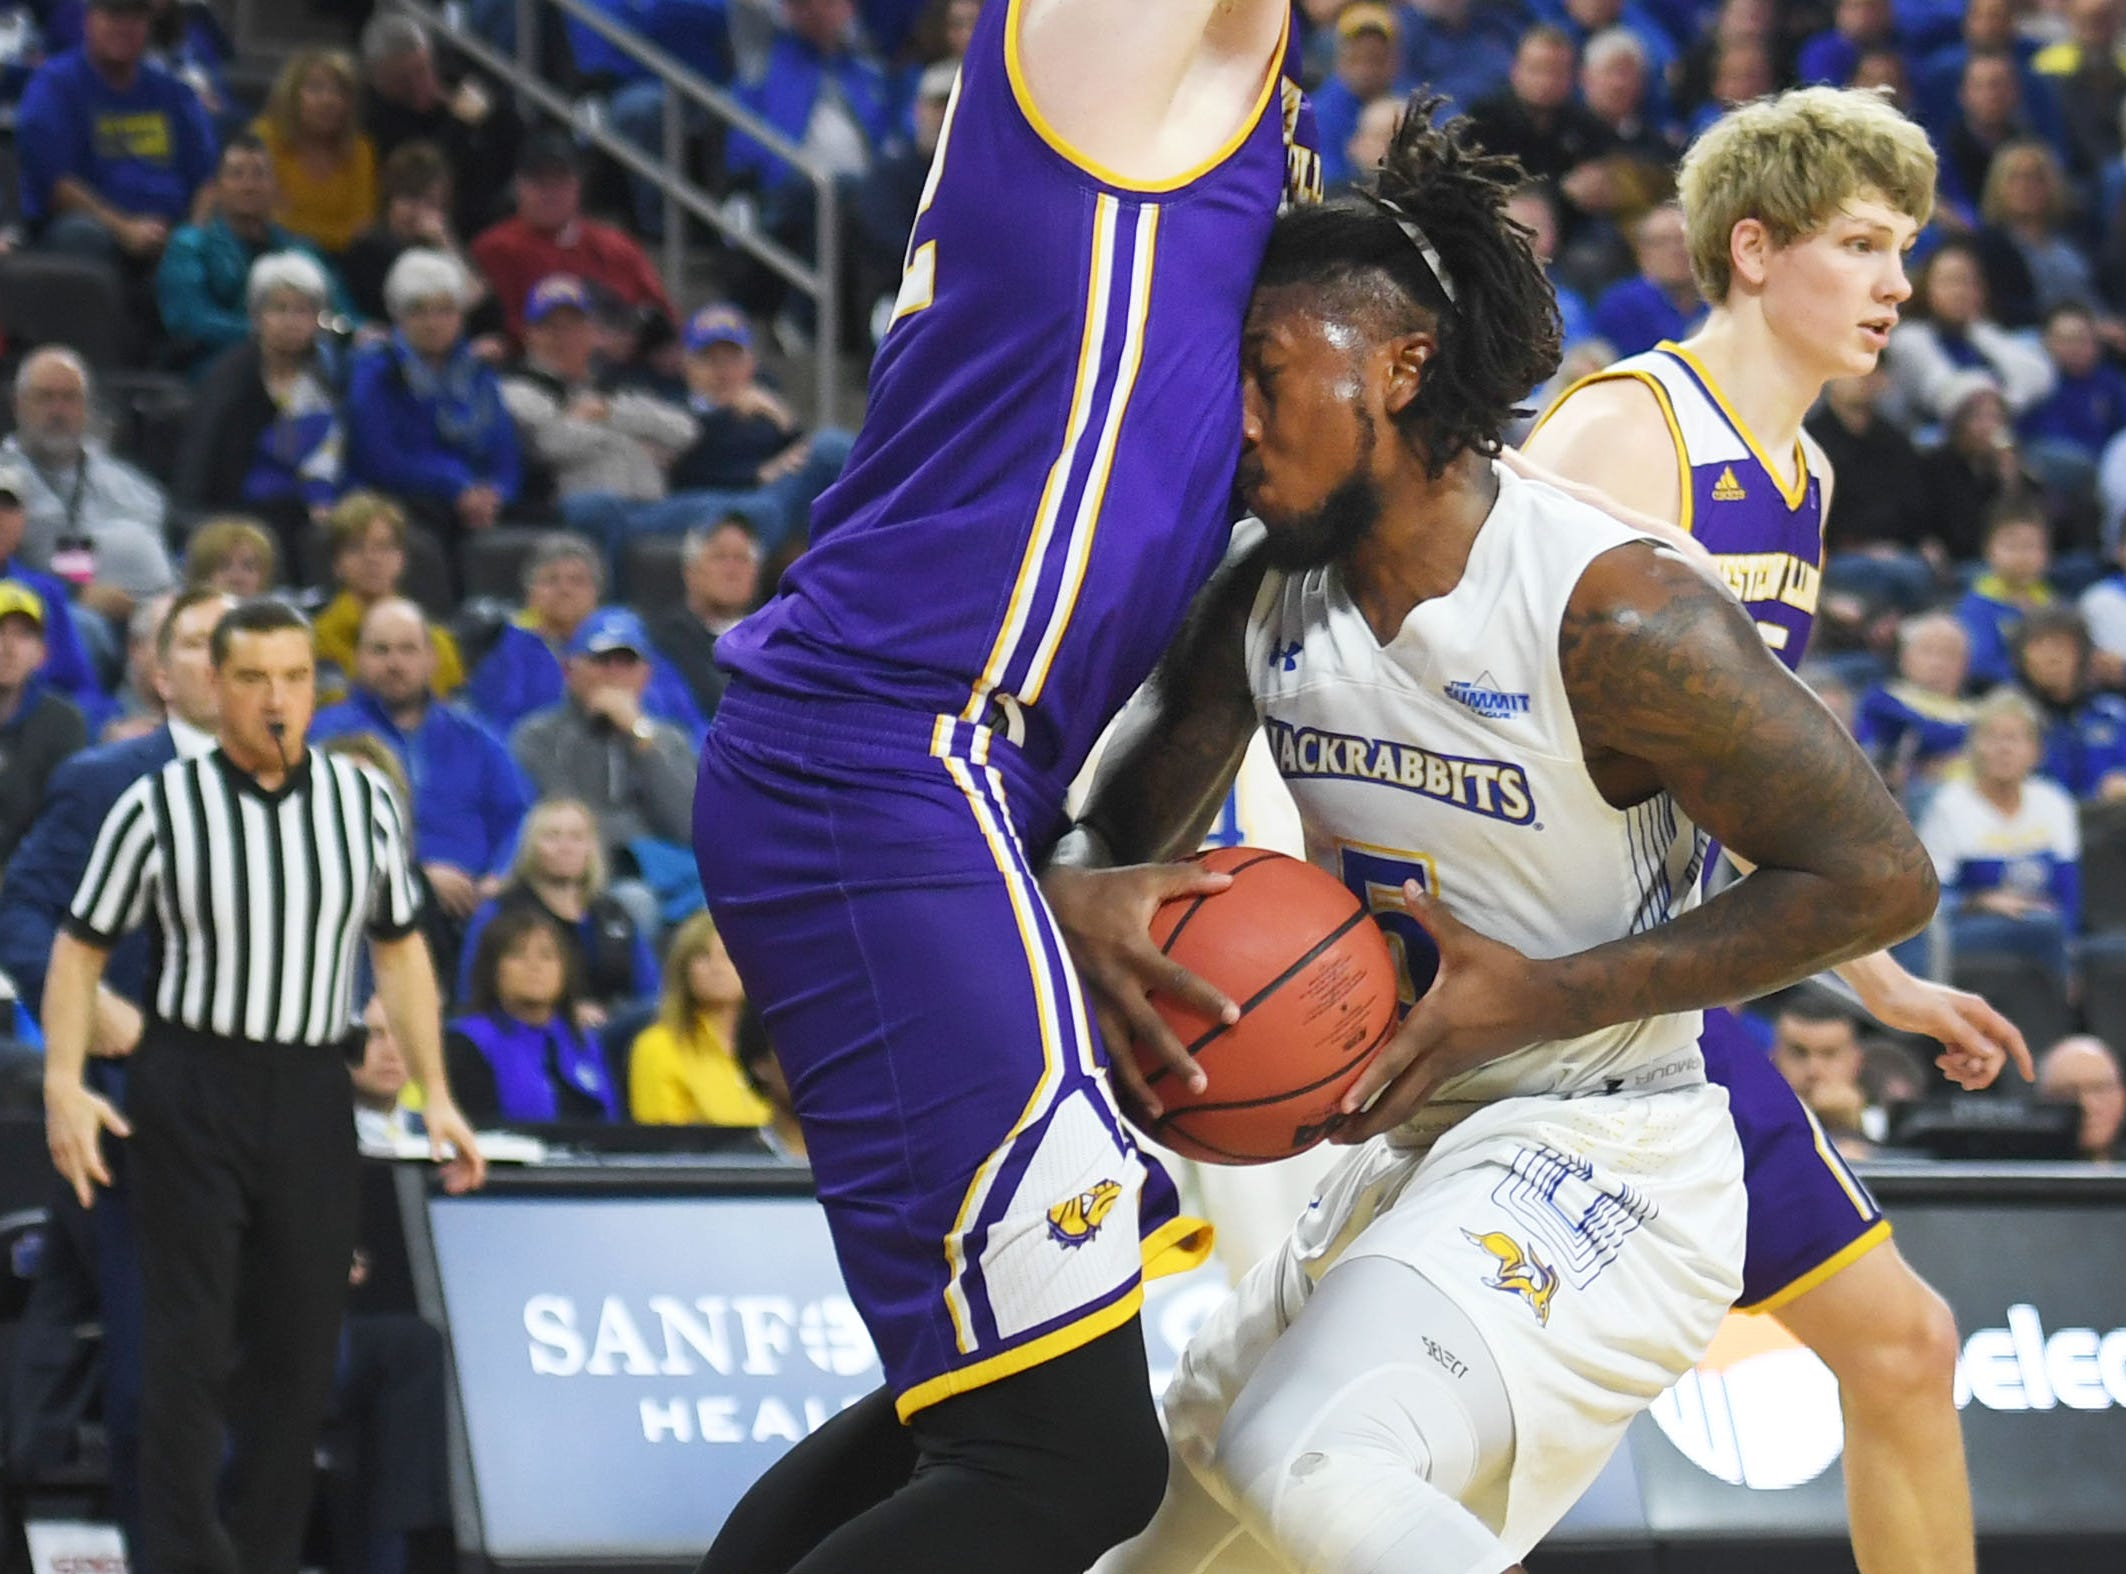 SDSU's David Jenkins goes against Western Illinois' Brandon Gilbeck during the game Saturday, March 9, in the Summit League tournament at the Denny Sanford Premier Center in Sioux Falls.